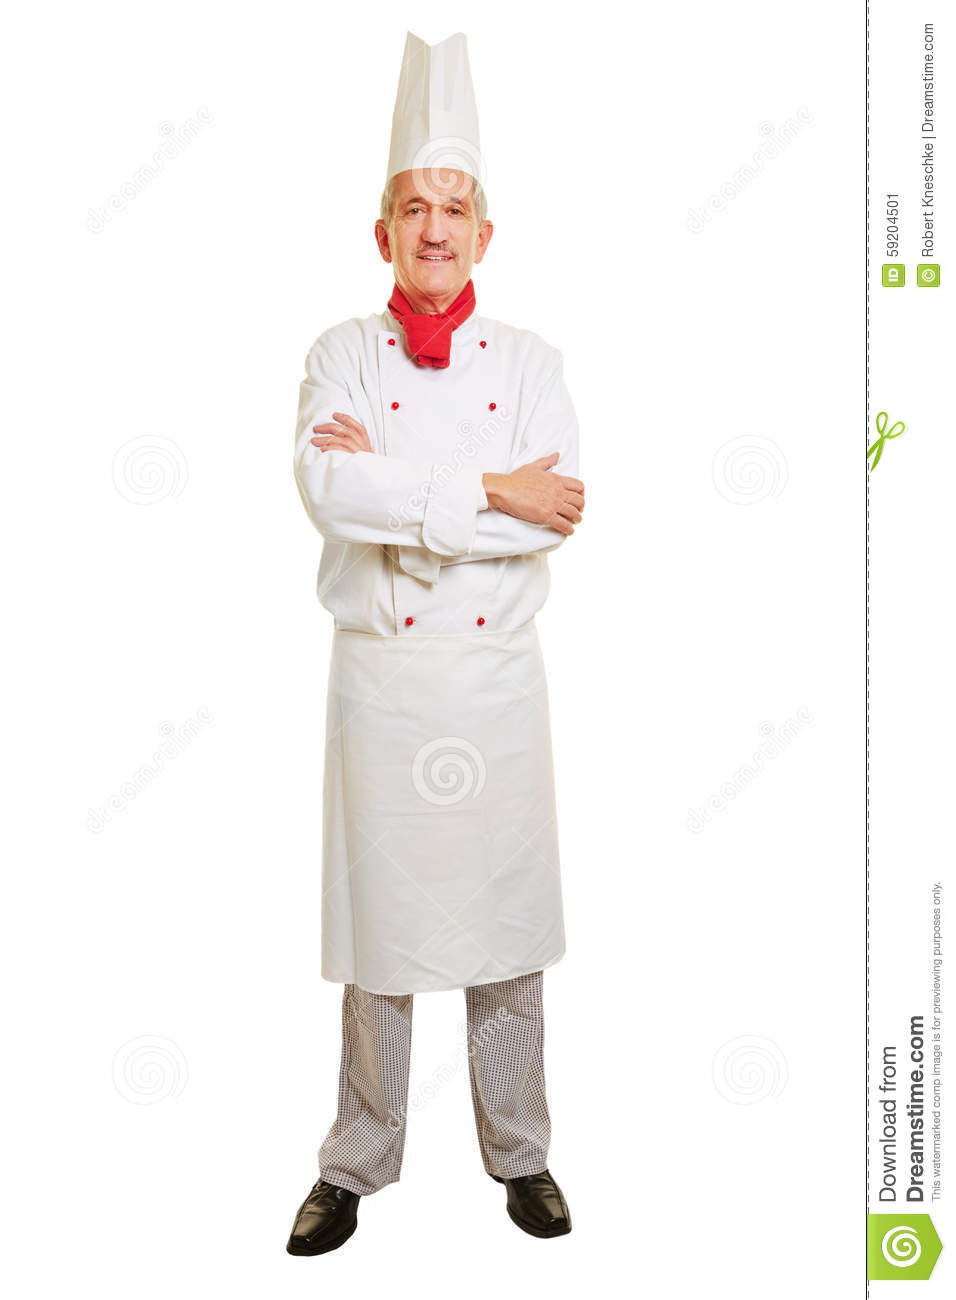 Full body shot of chef cook in workwear with his arms crossed.